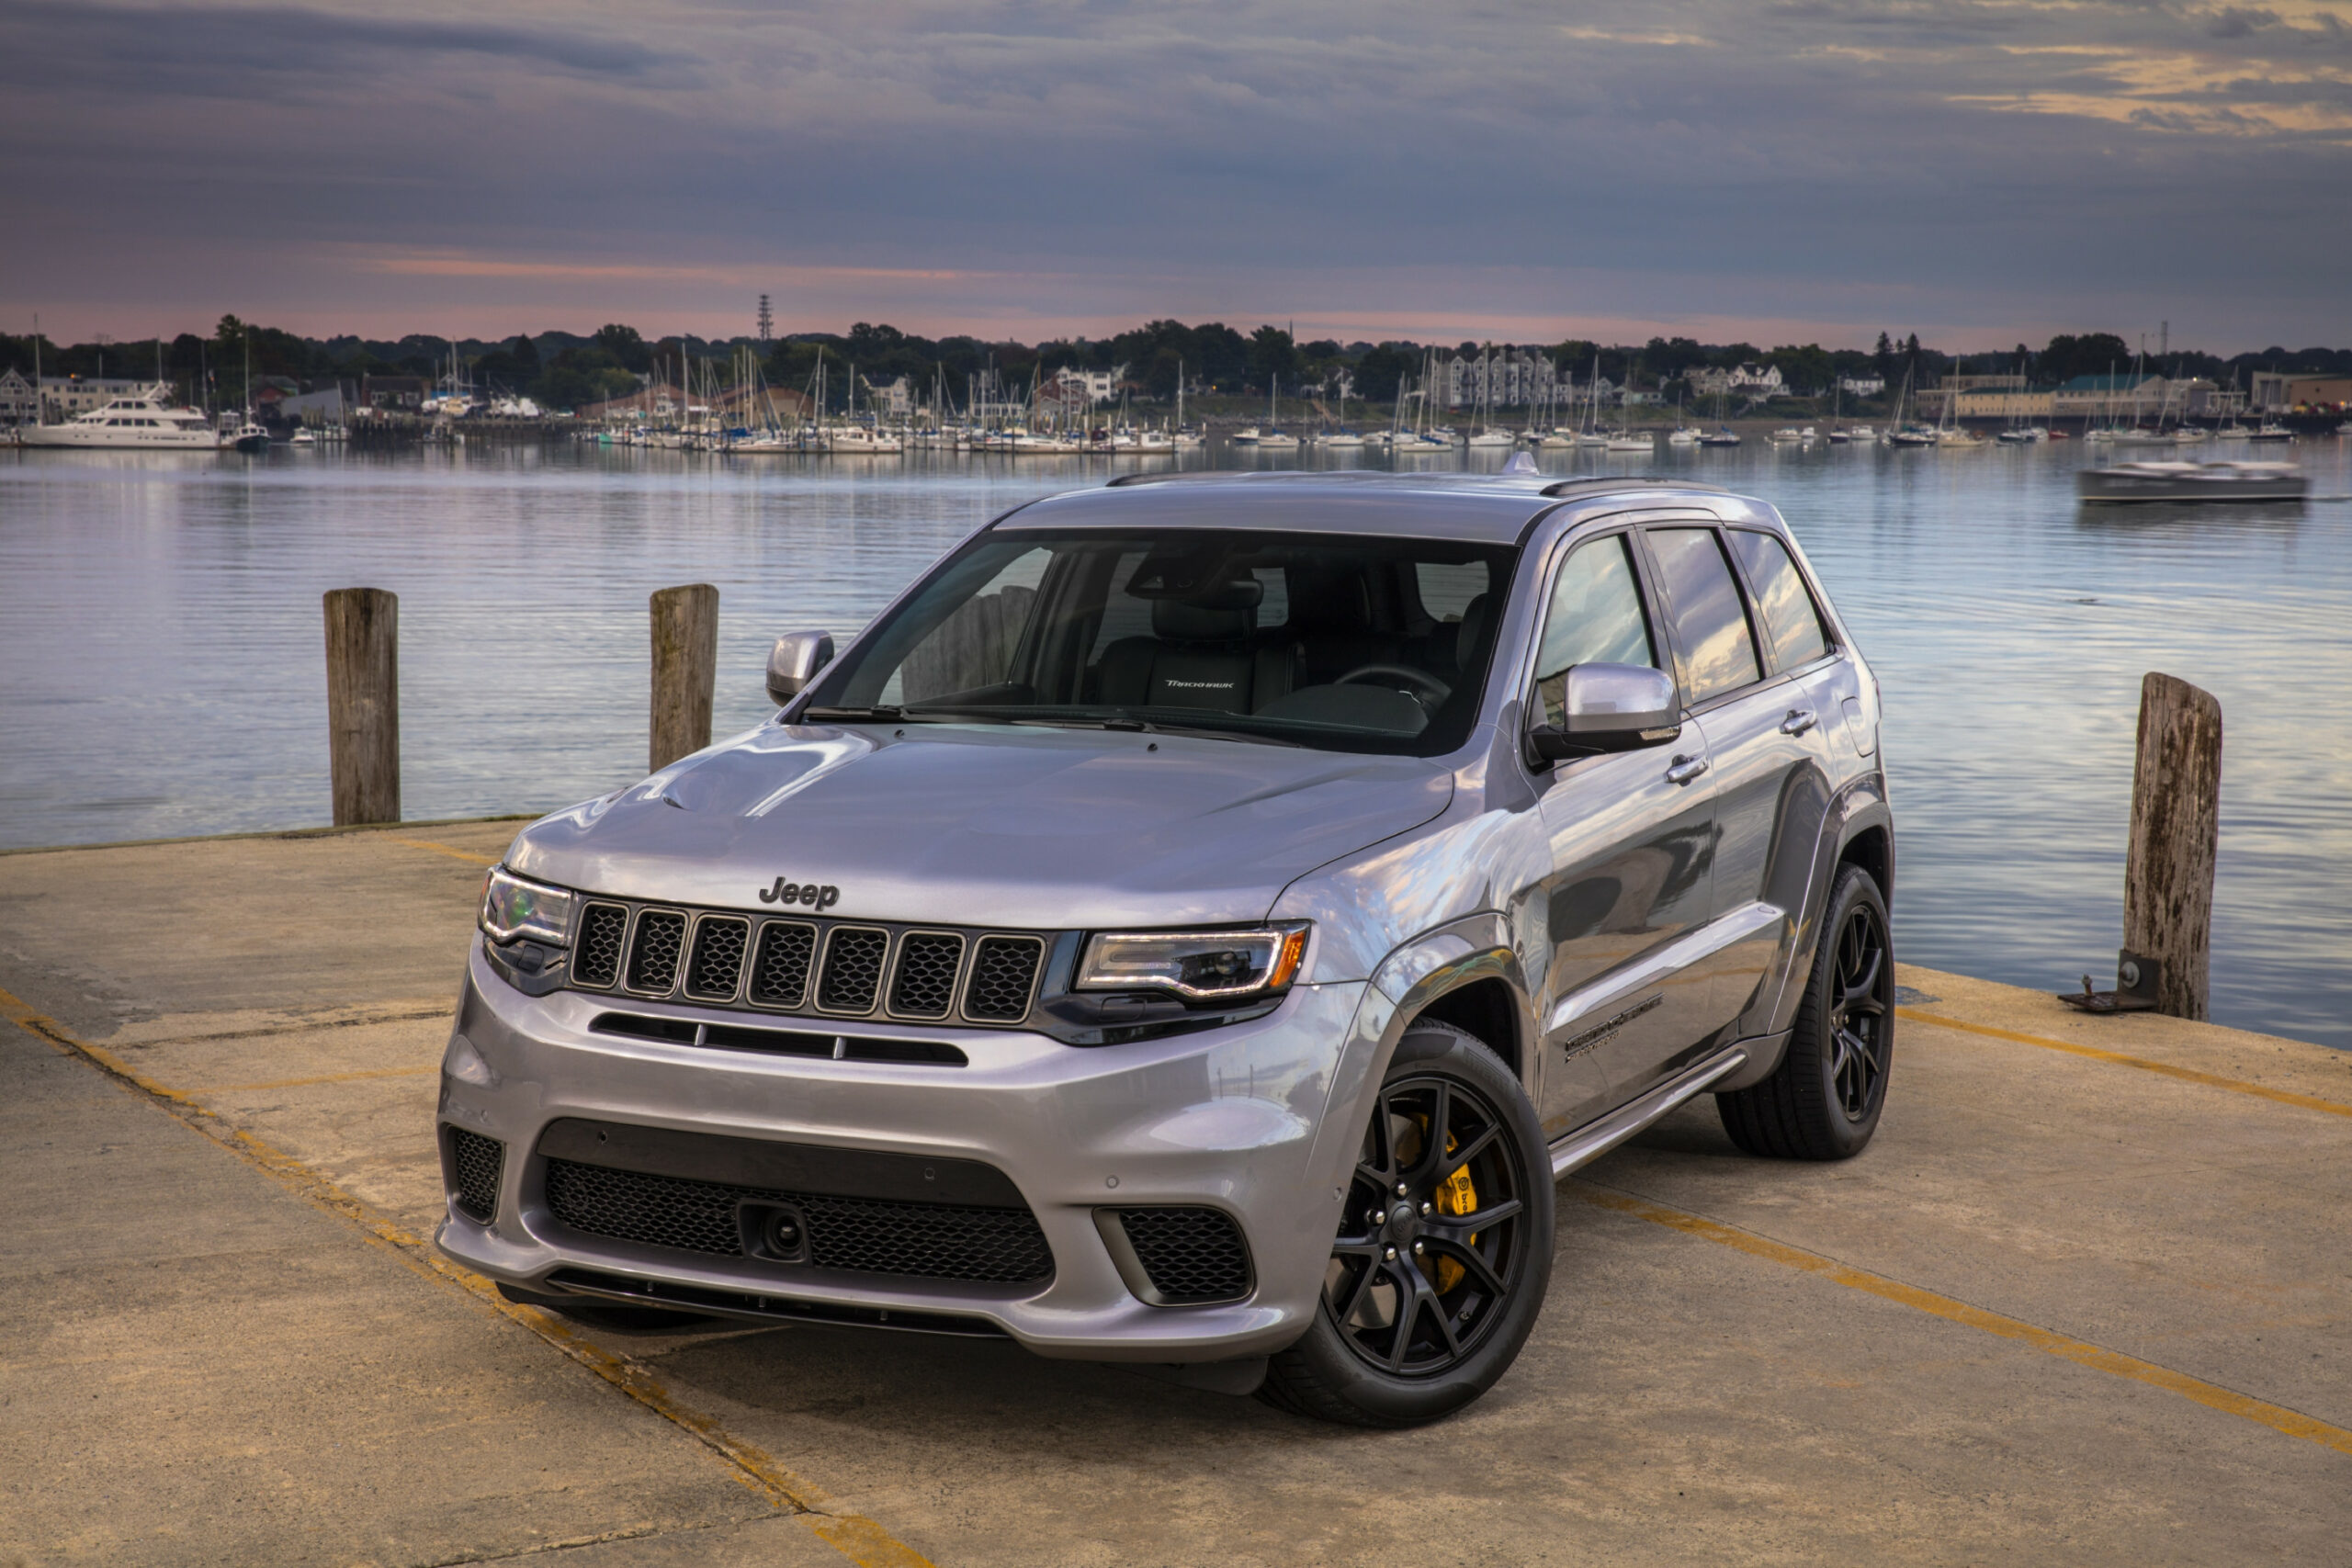 Grand Cherokee - Geigercars - Home of US-Cars